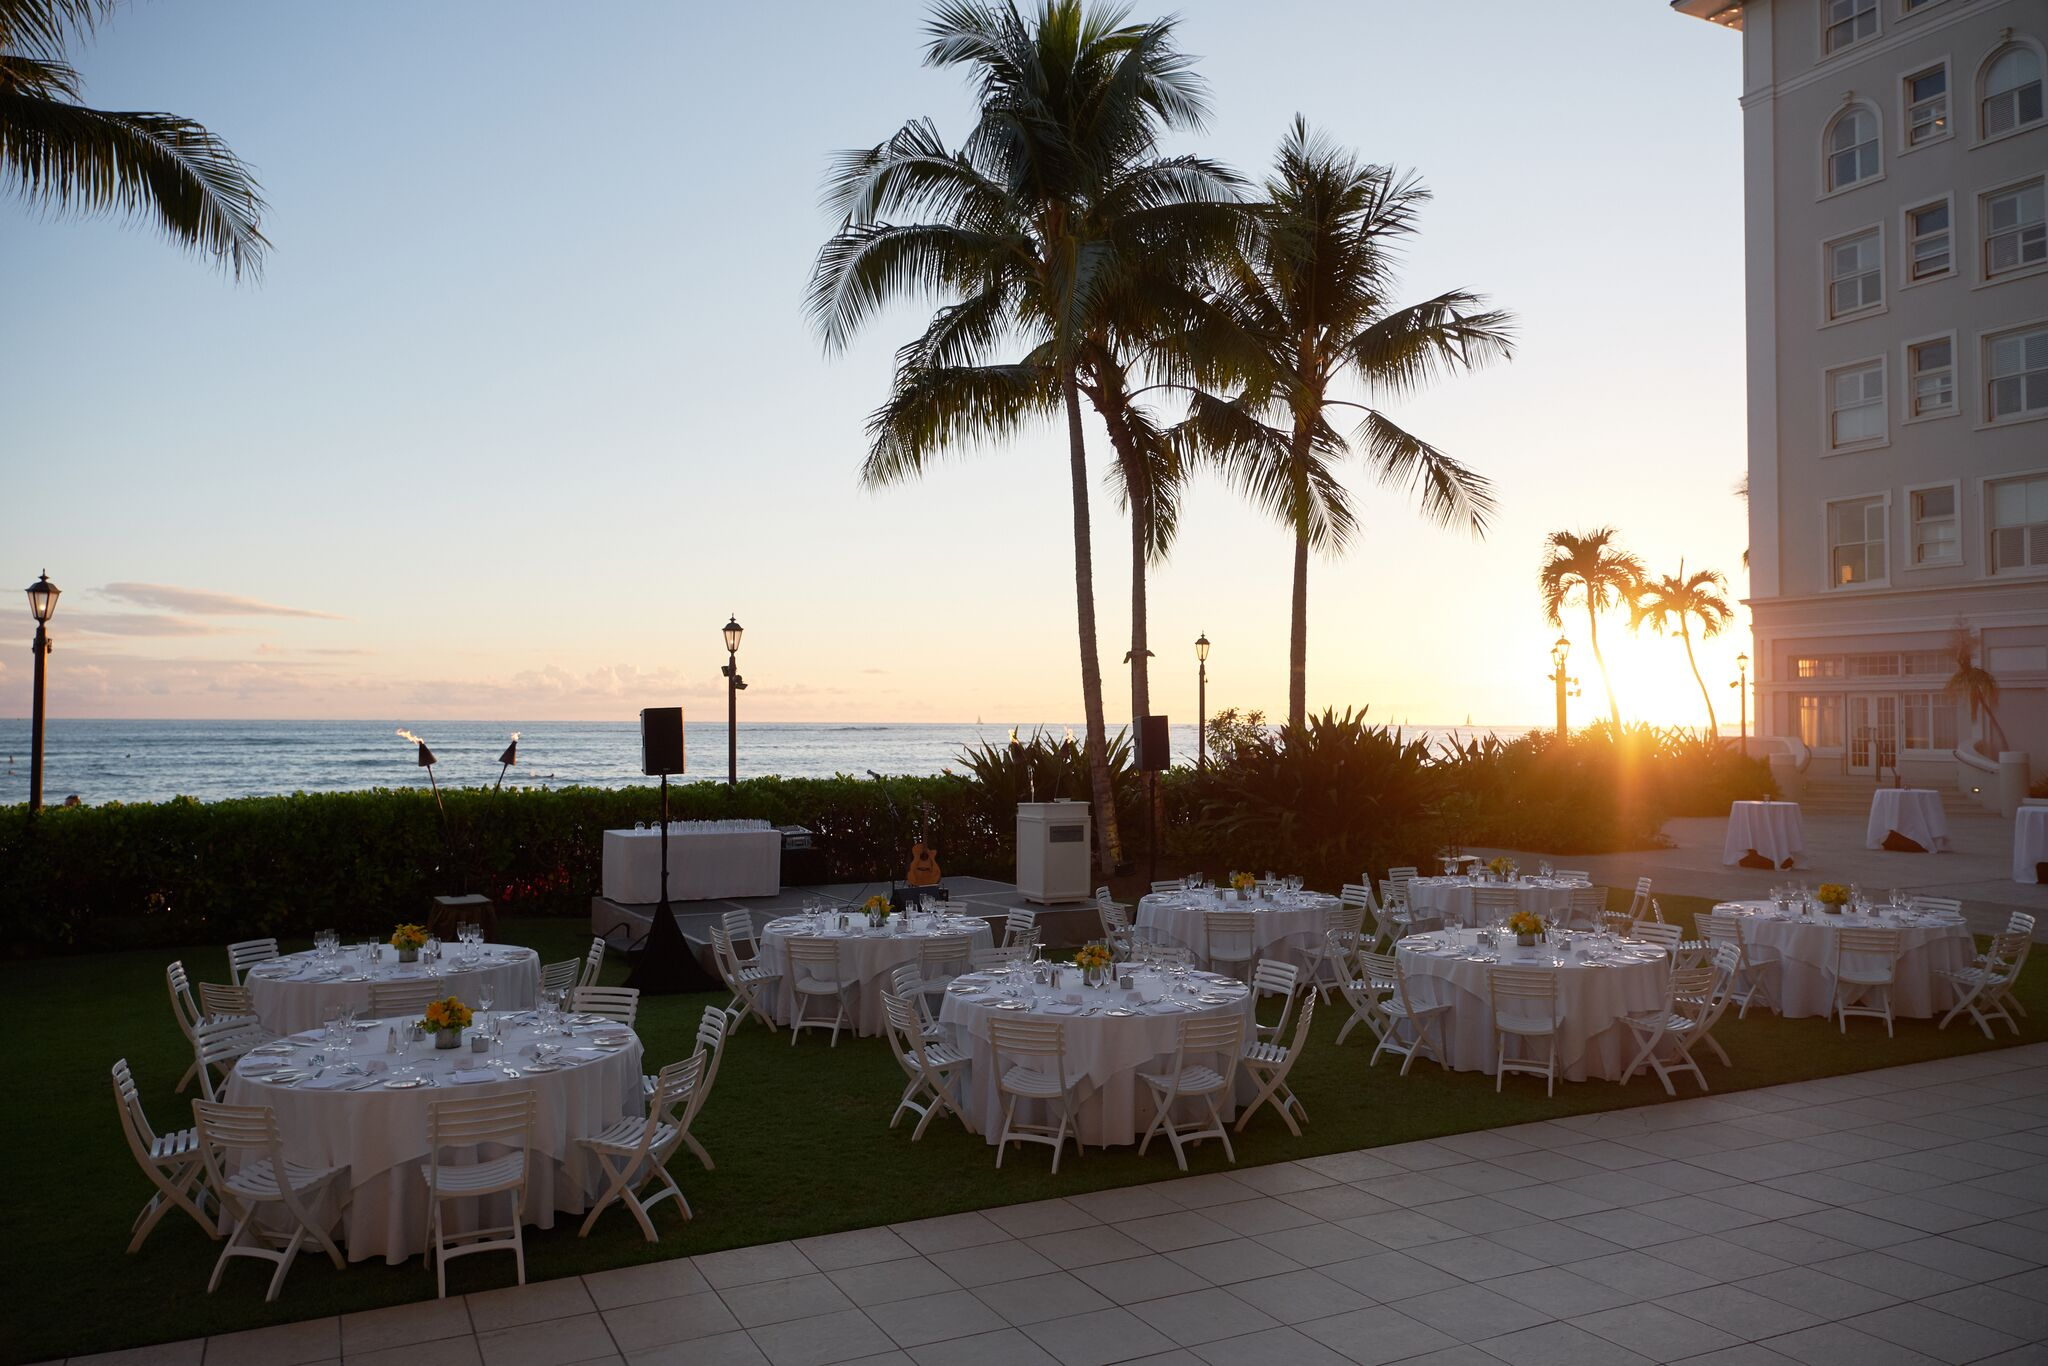 Sunset Dinner set for guests in Waikiki, Oahu.